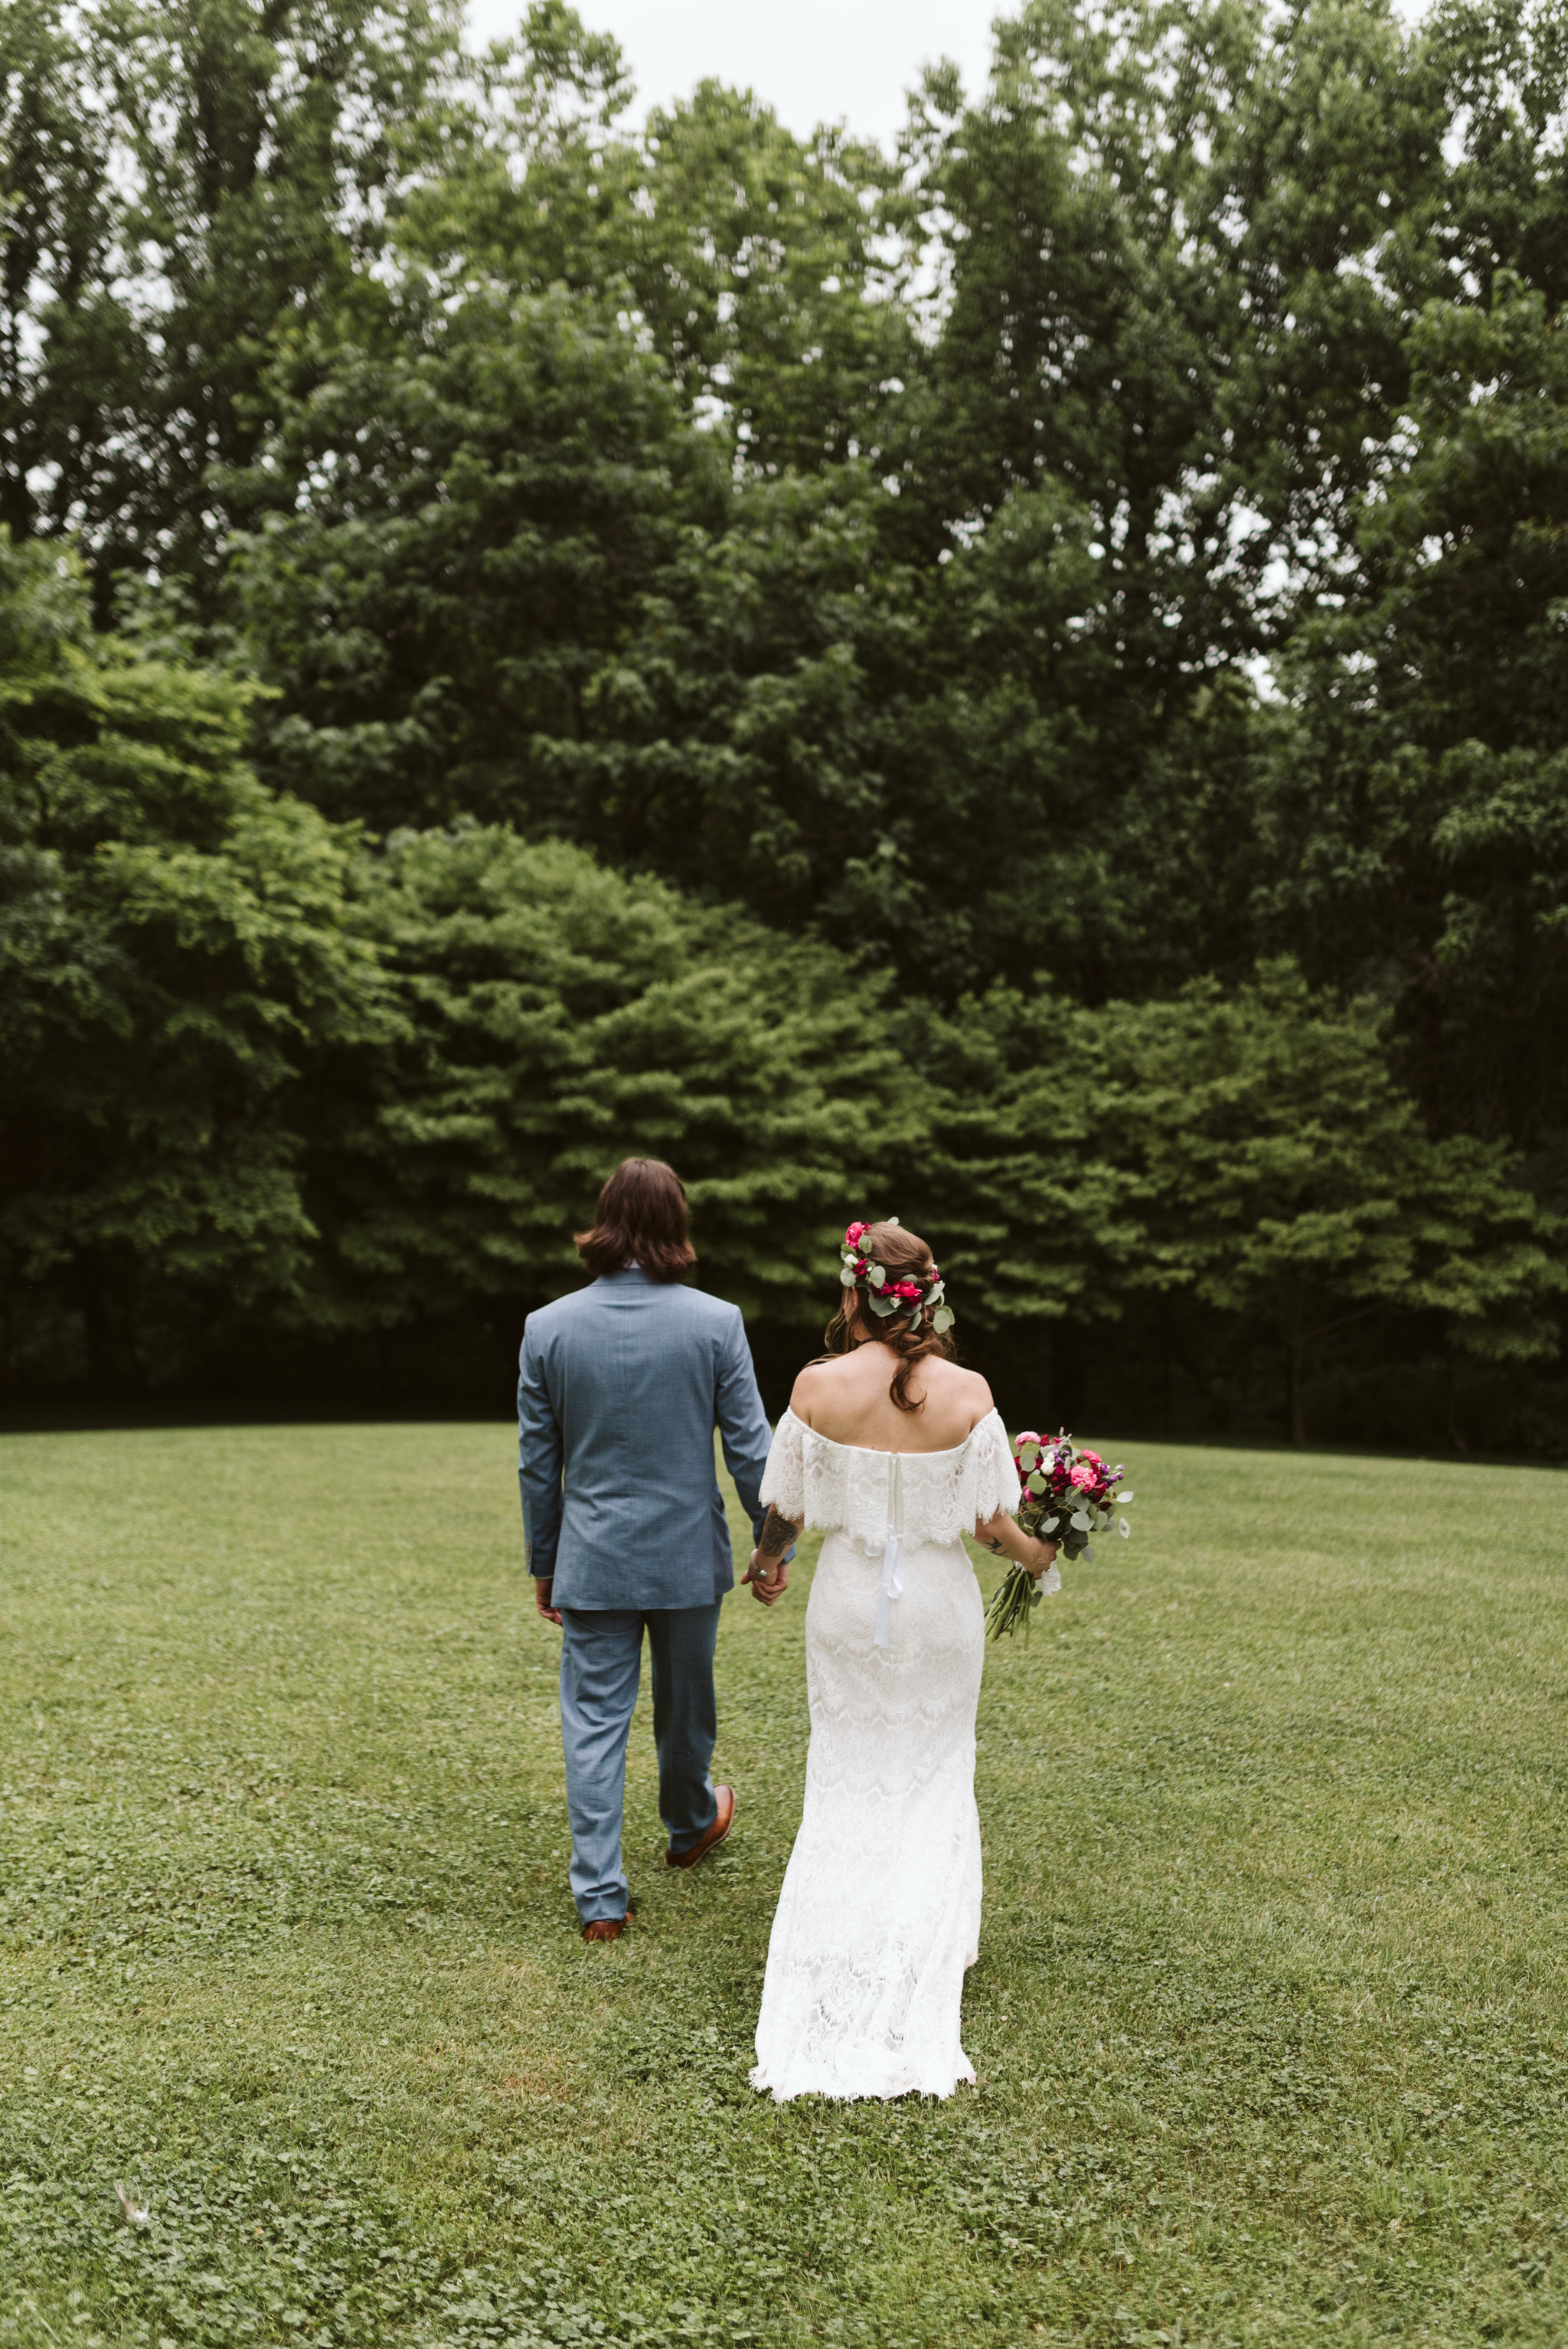 Annapolis, Quaker Wedding, Maryland Wedding Photographer, Intimate, Small Wedding, Vintage, DIY, Bride and Groom Walking Hand in Hand